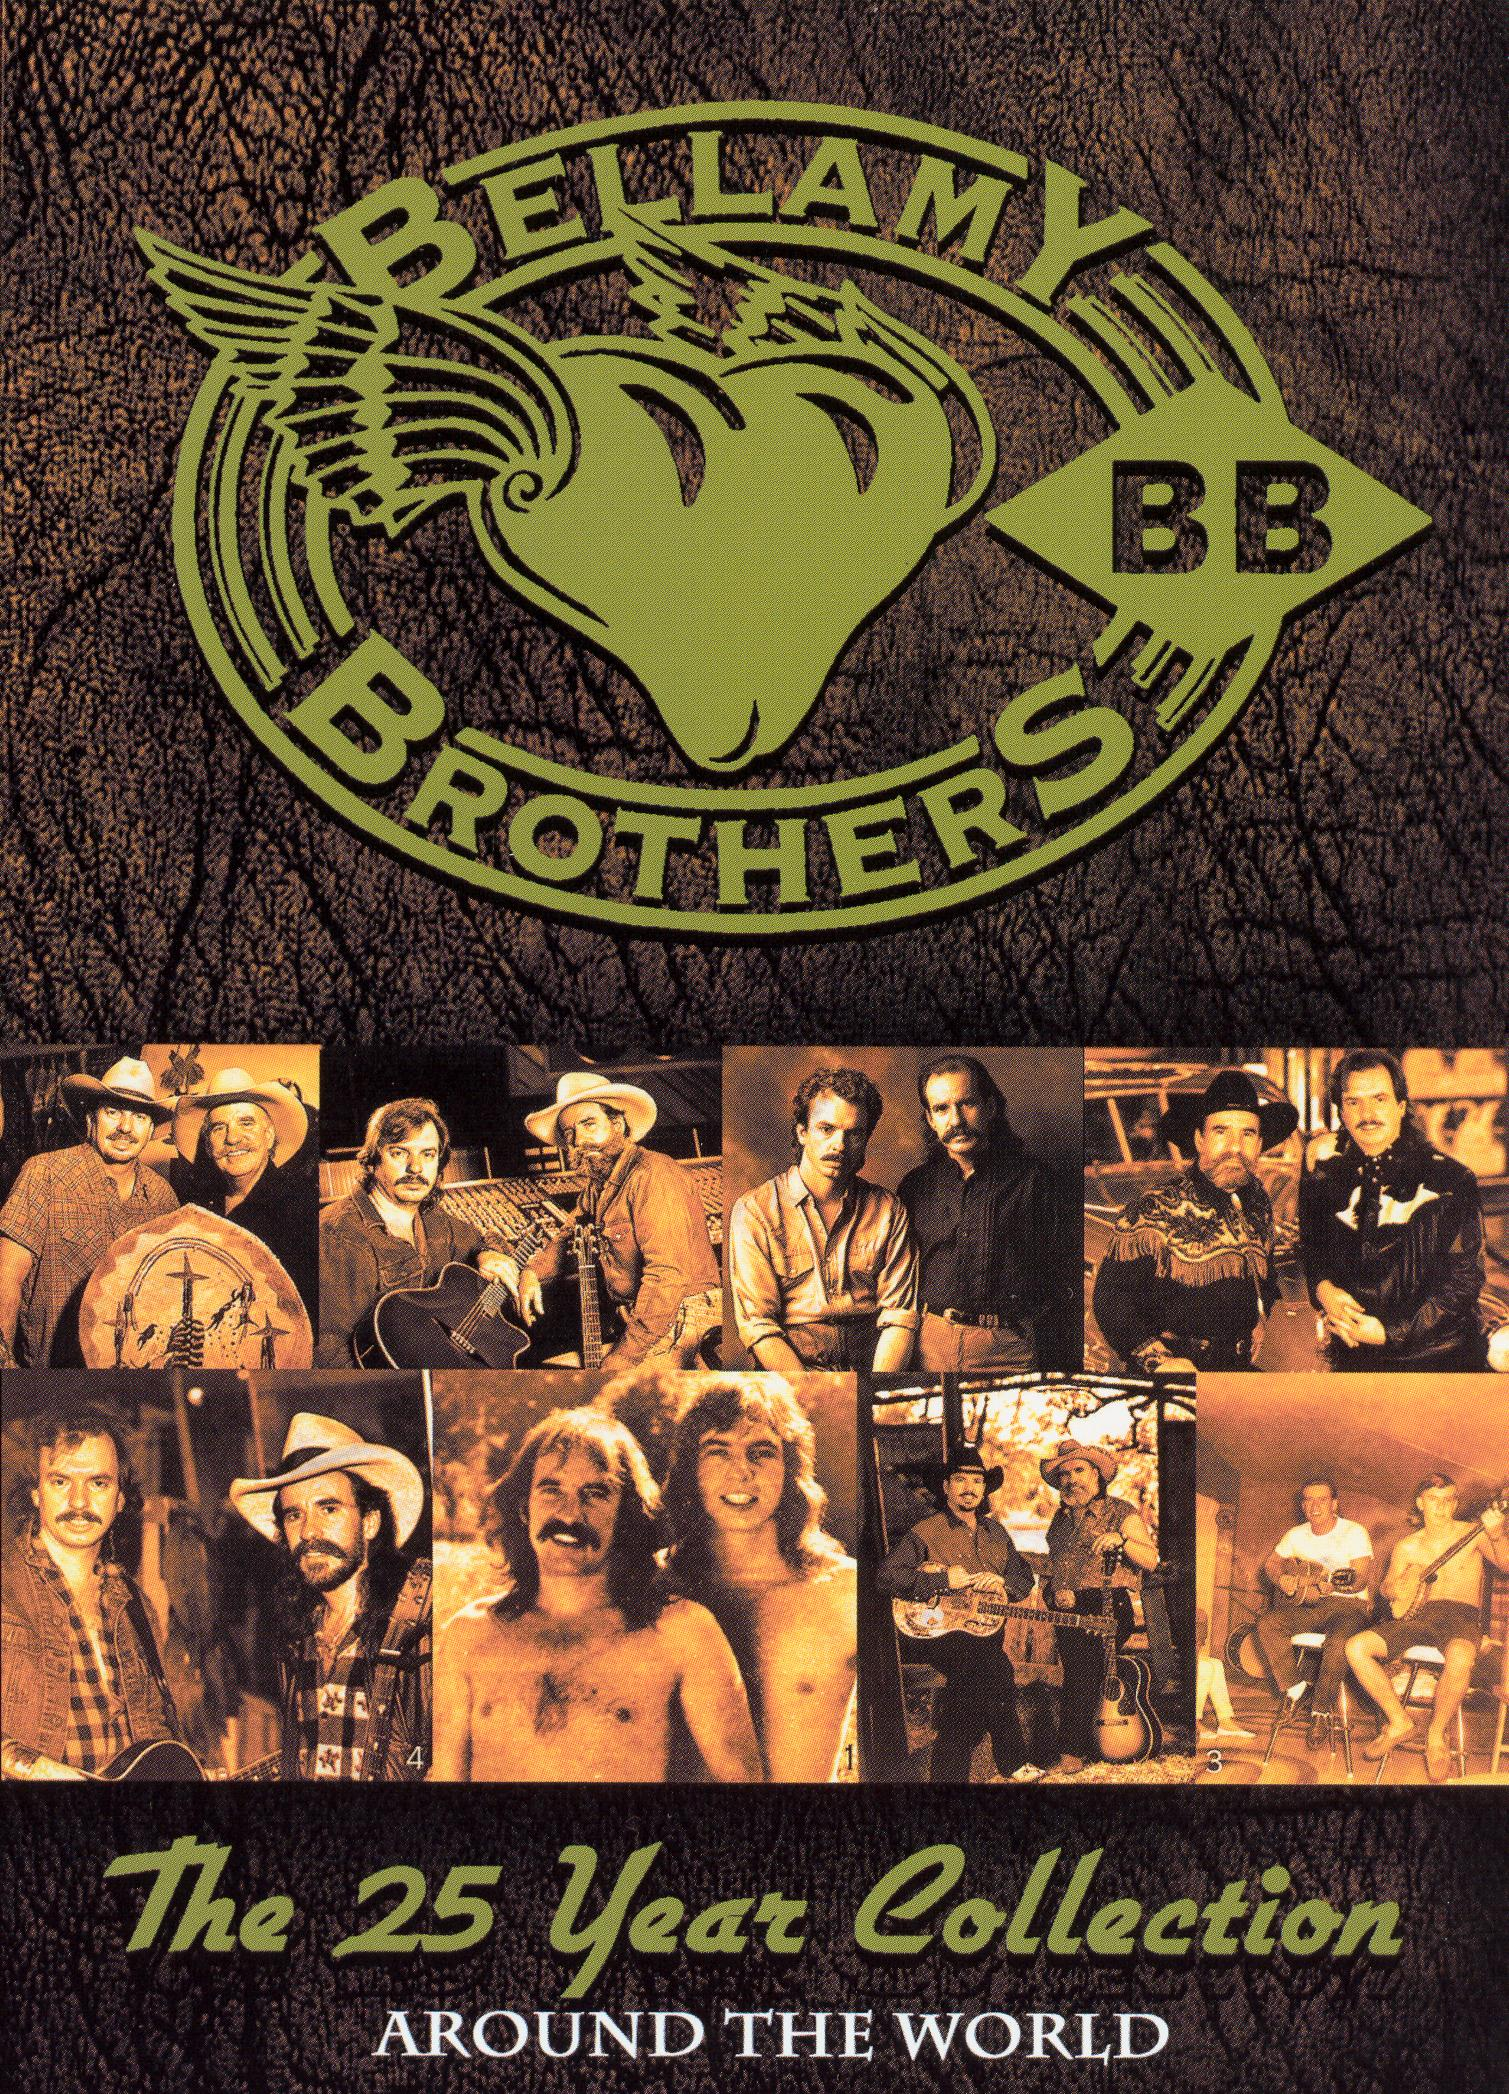 The Bellamy Brothers: 25 Year Collection Around The World